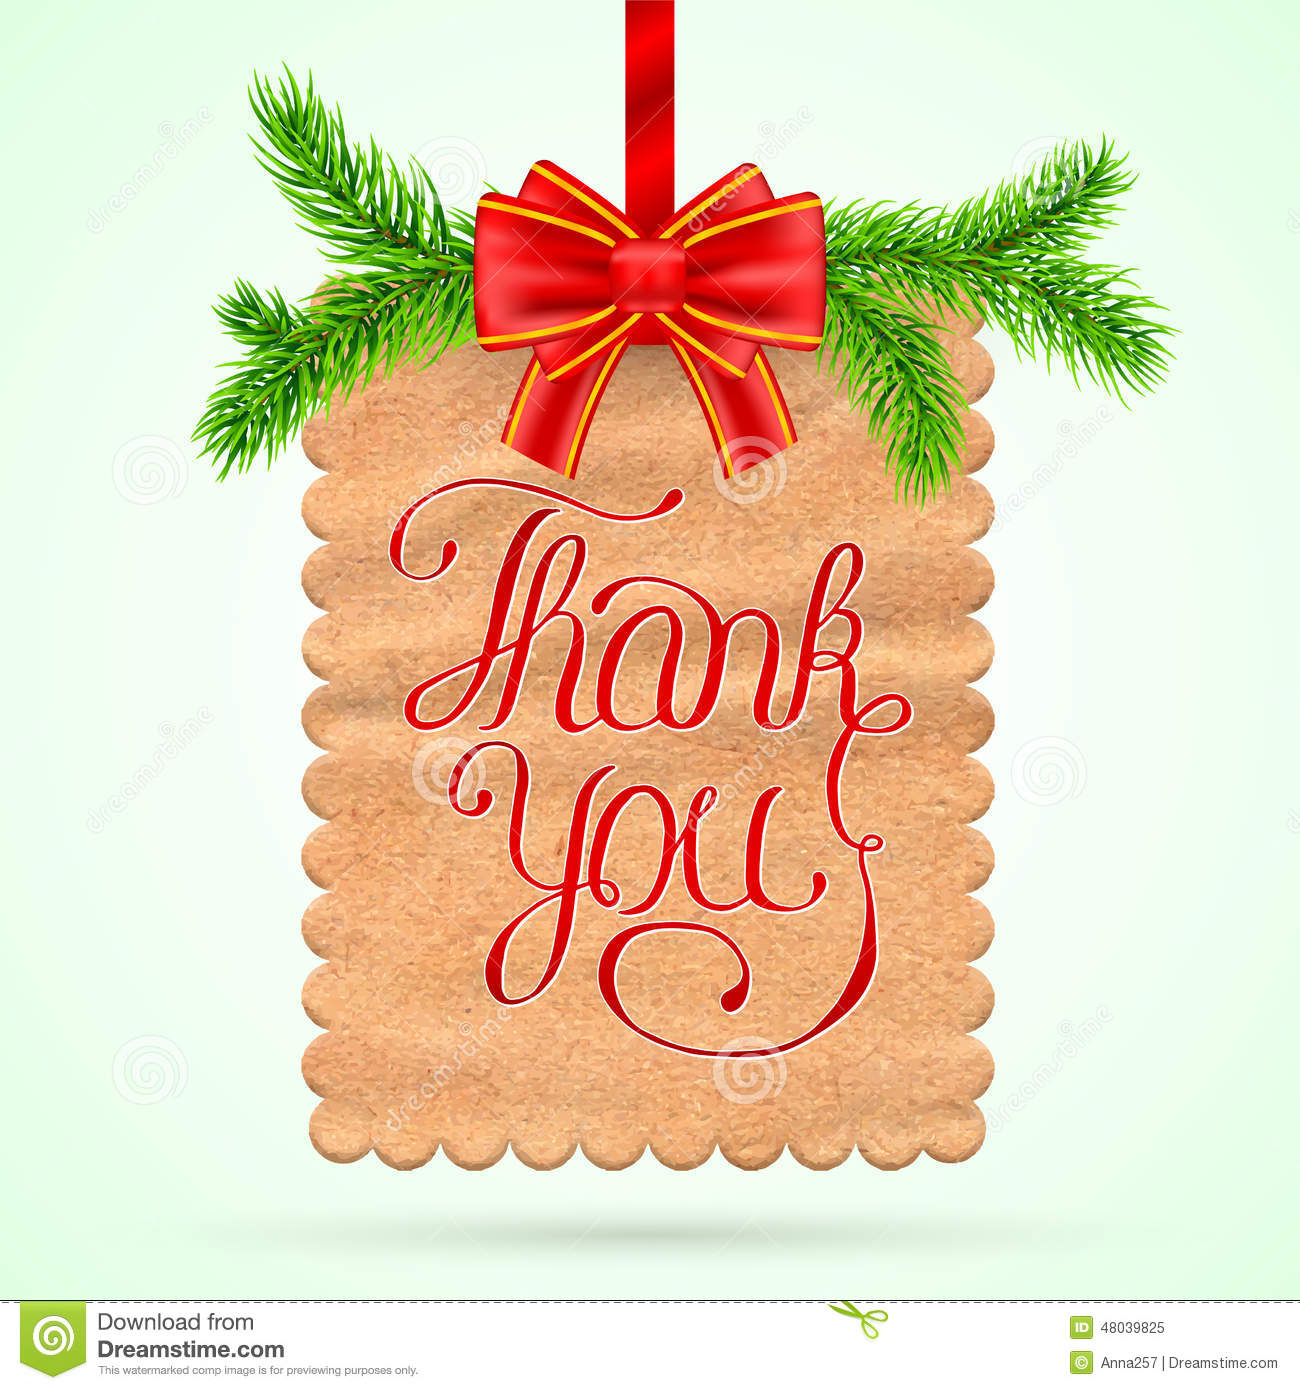 Christmas Thank you card stock vector. Illustration of festive.